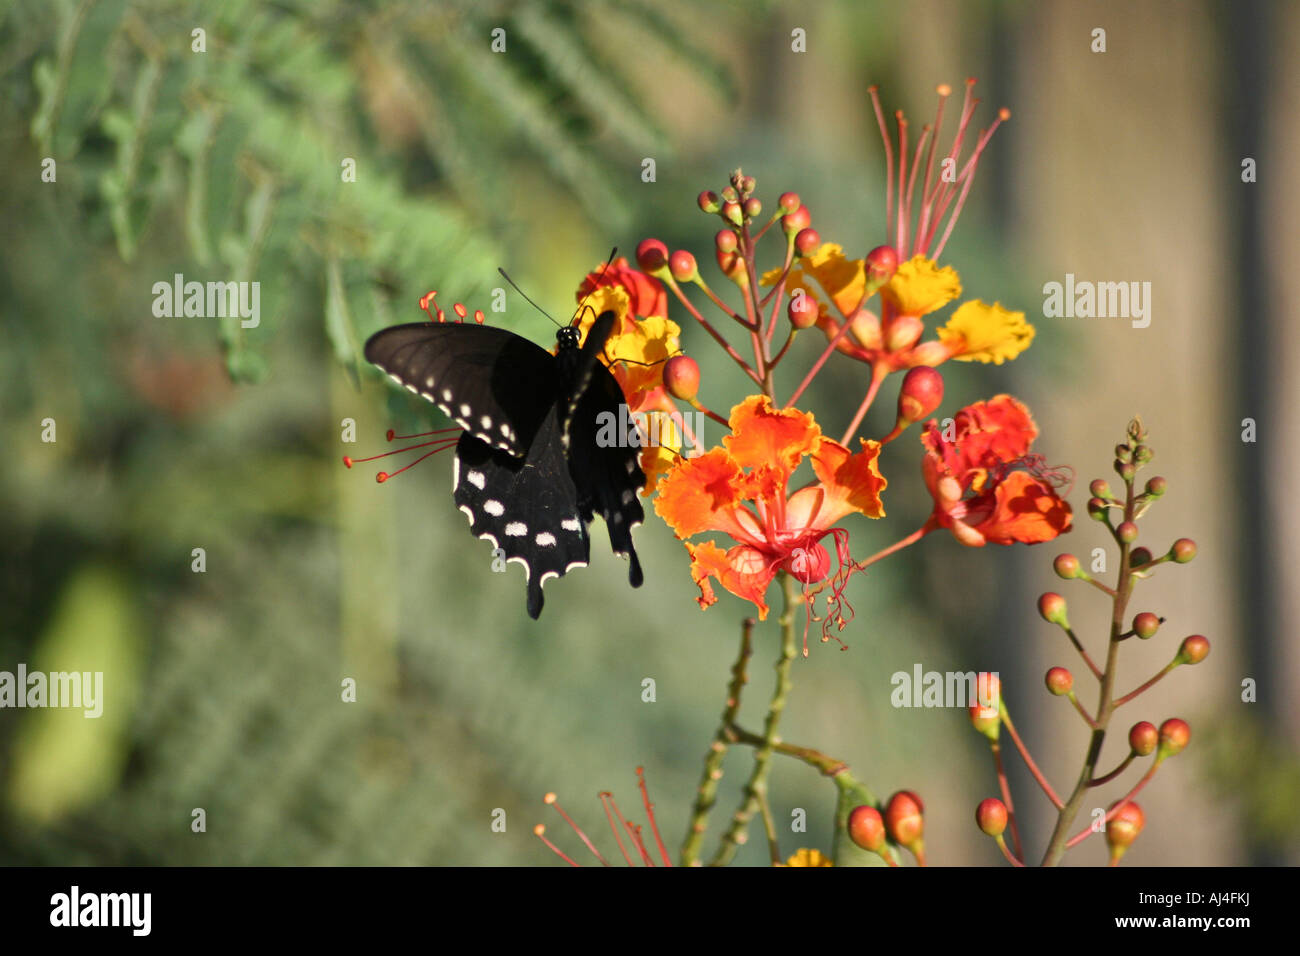 black butterfly on a mexican bird of paradise flower in the